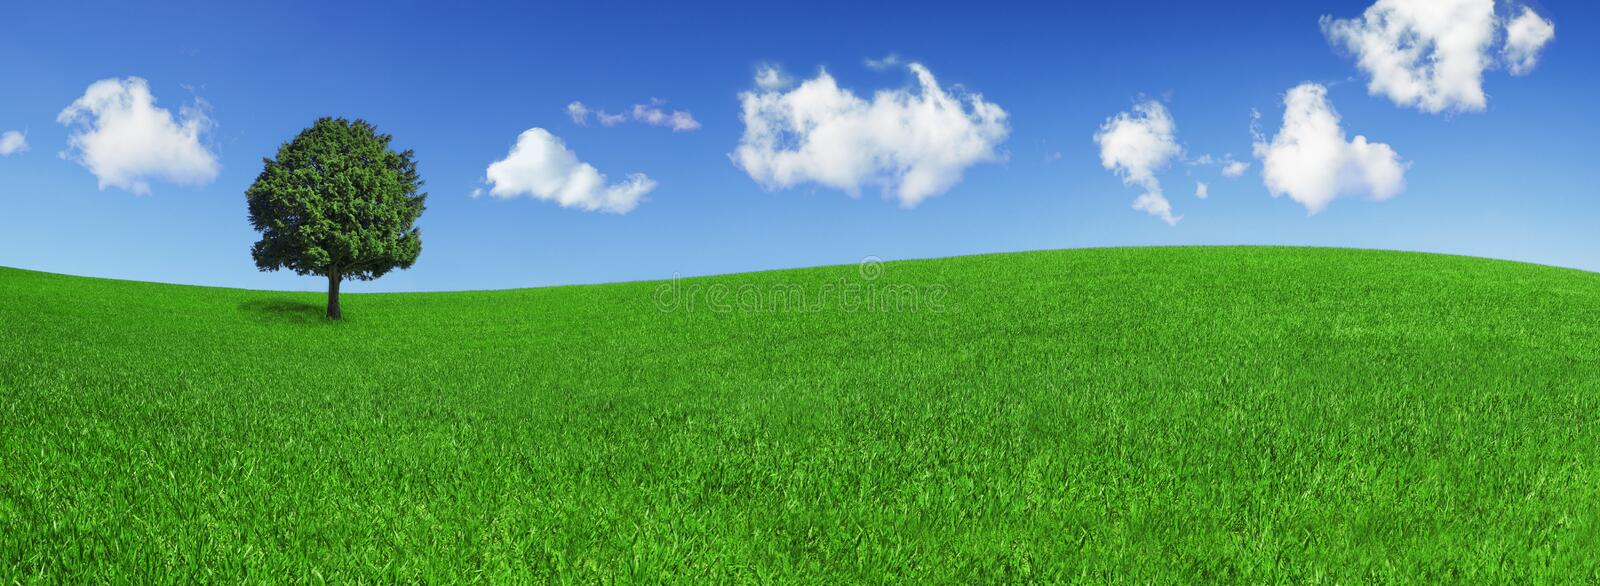 Lonely tree on a green field. Panoramic format of a lonely tree on a green field, on a clear blue sky with beautiful clouds stock photo